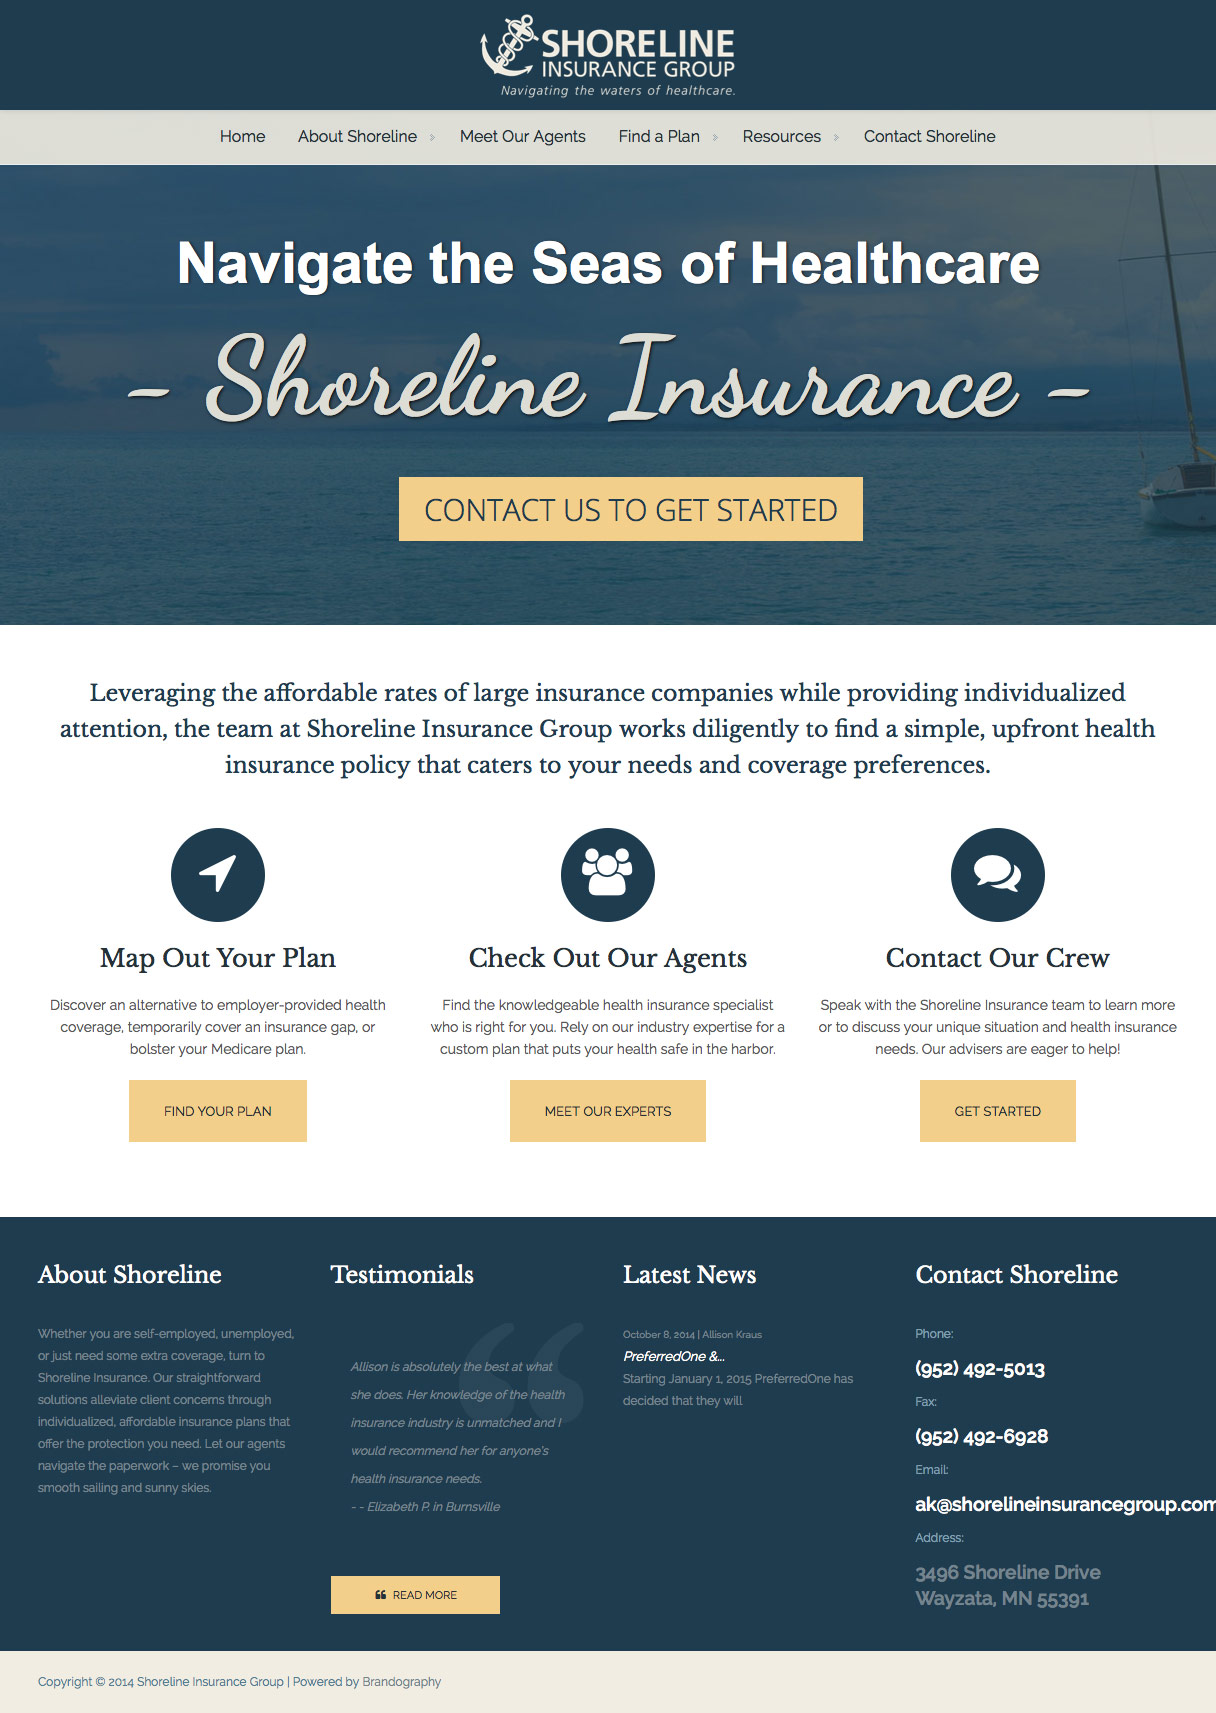 Shoreline Insurance Group Site